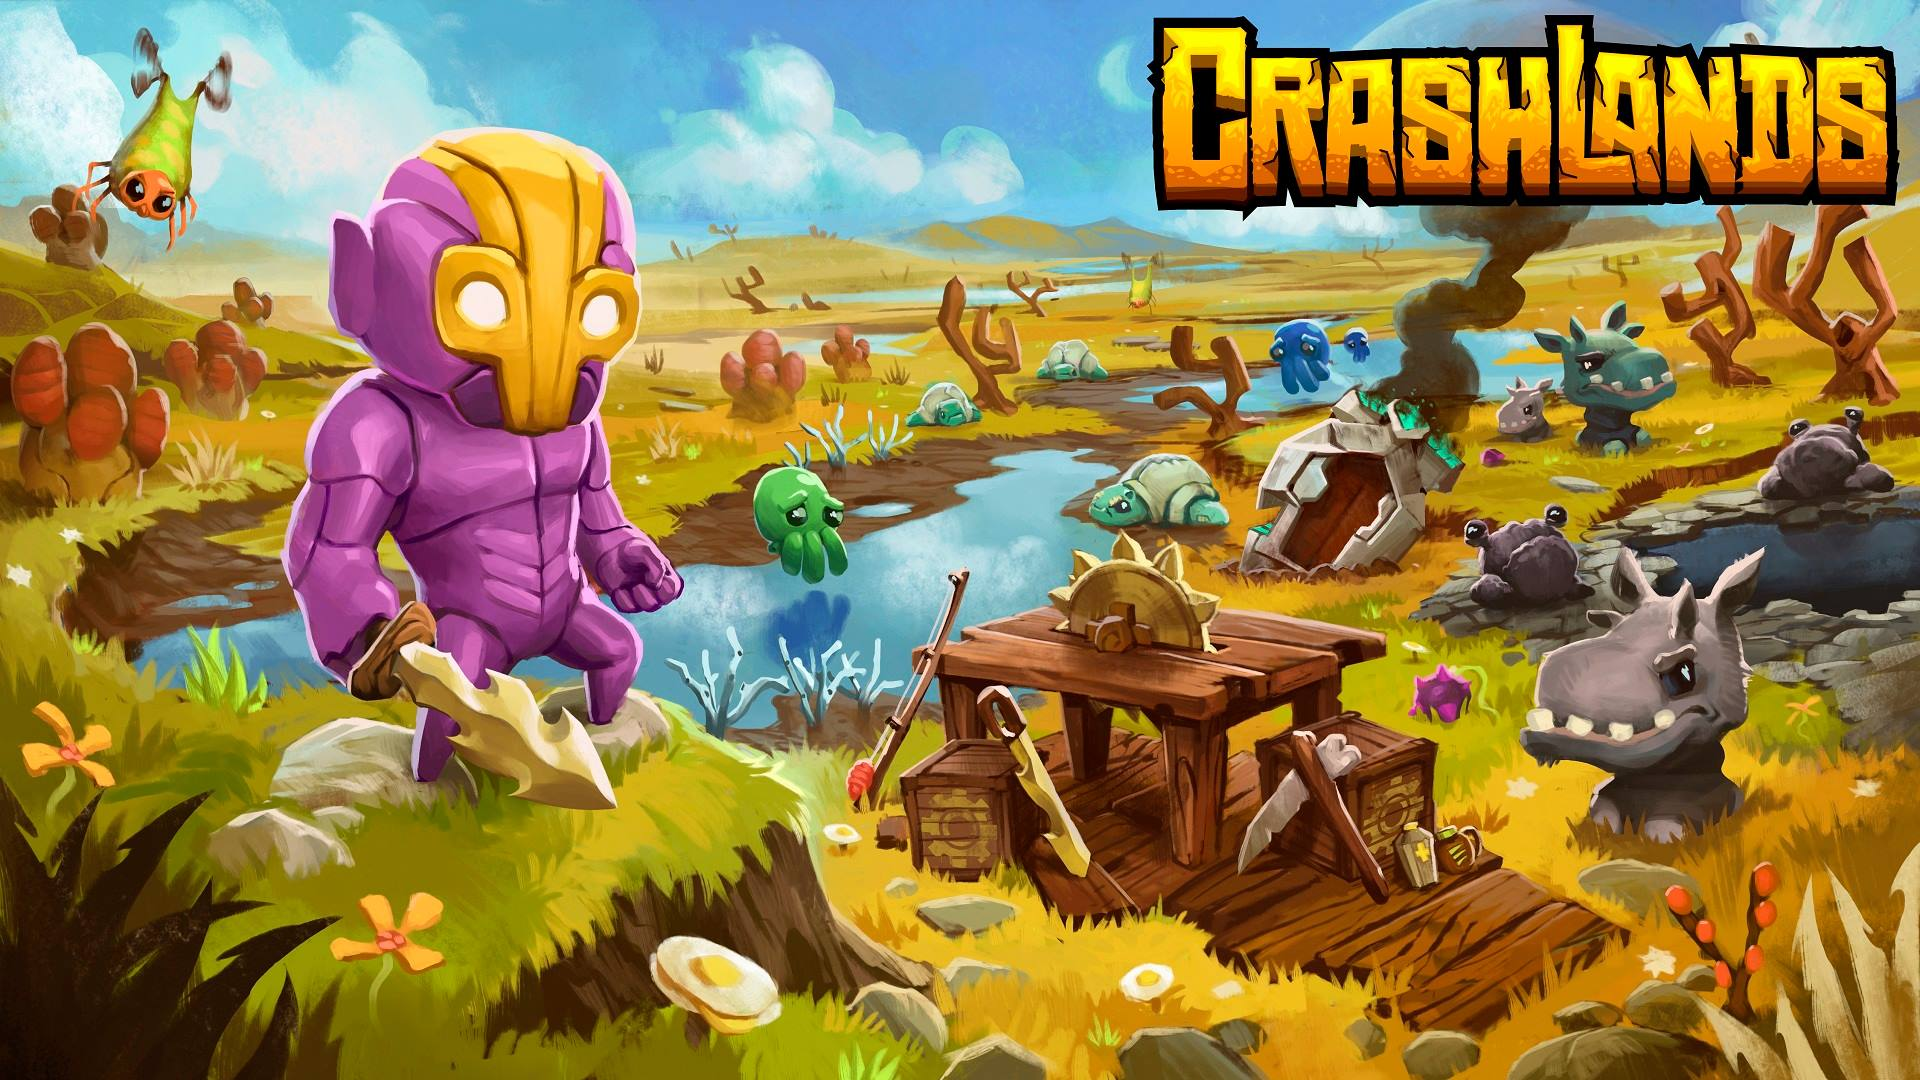 Crashlands, a game by Butterscotch Shenanigans